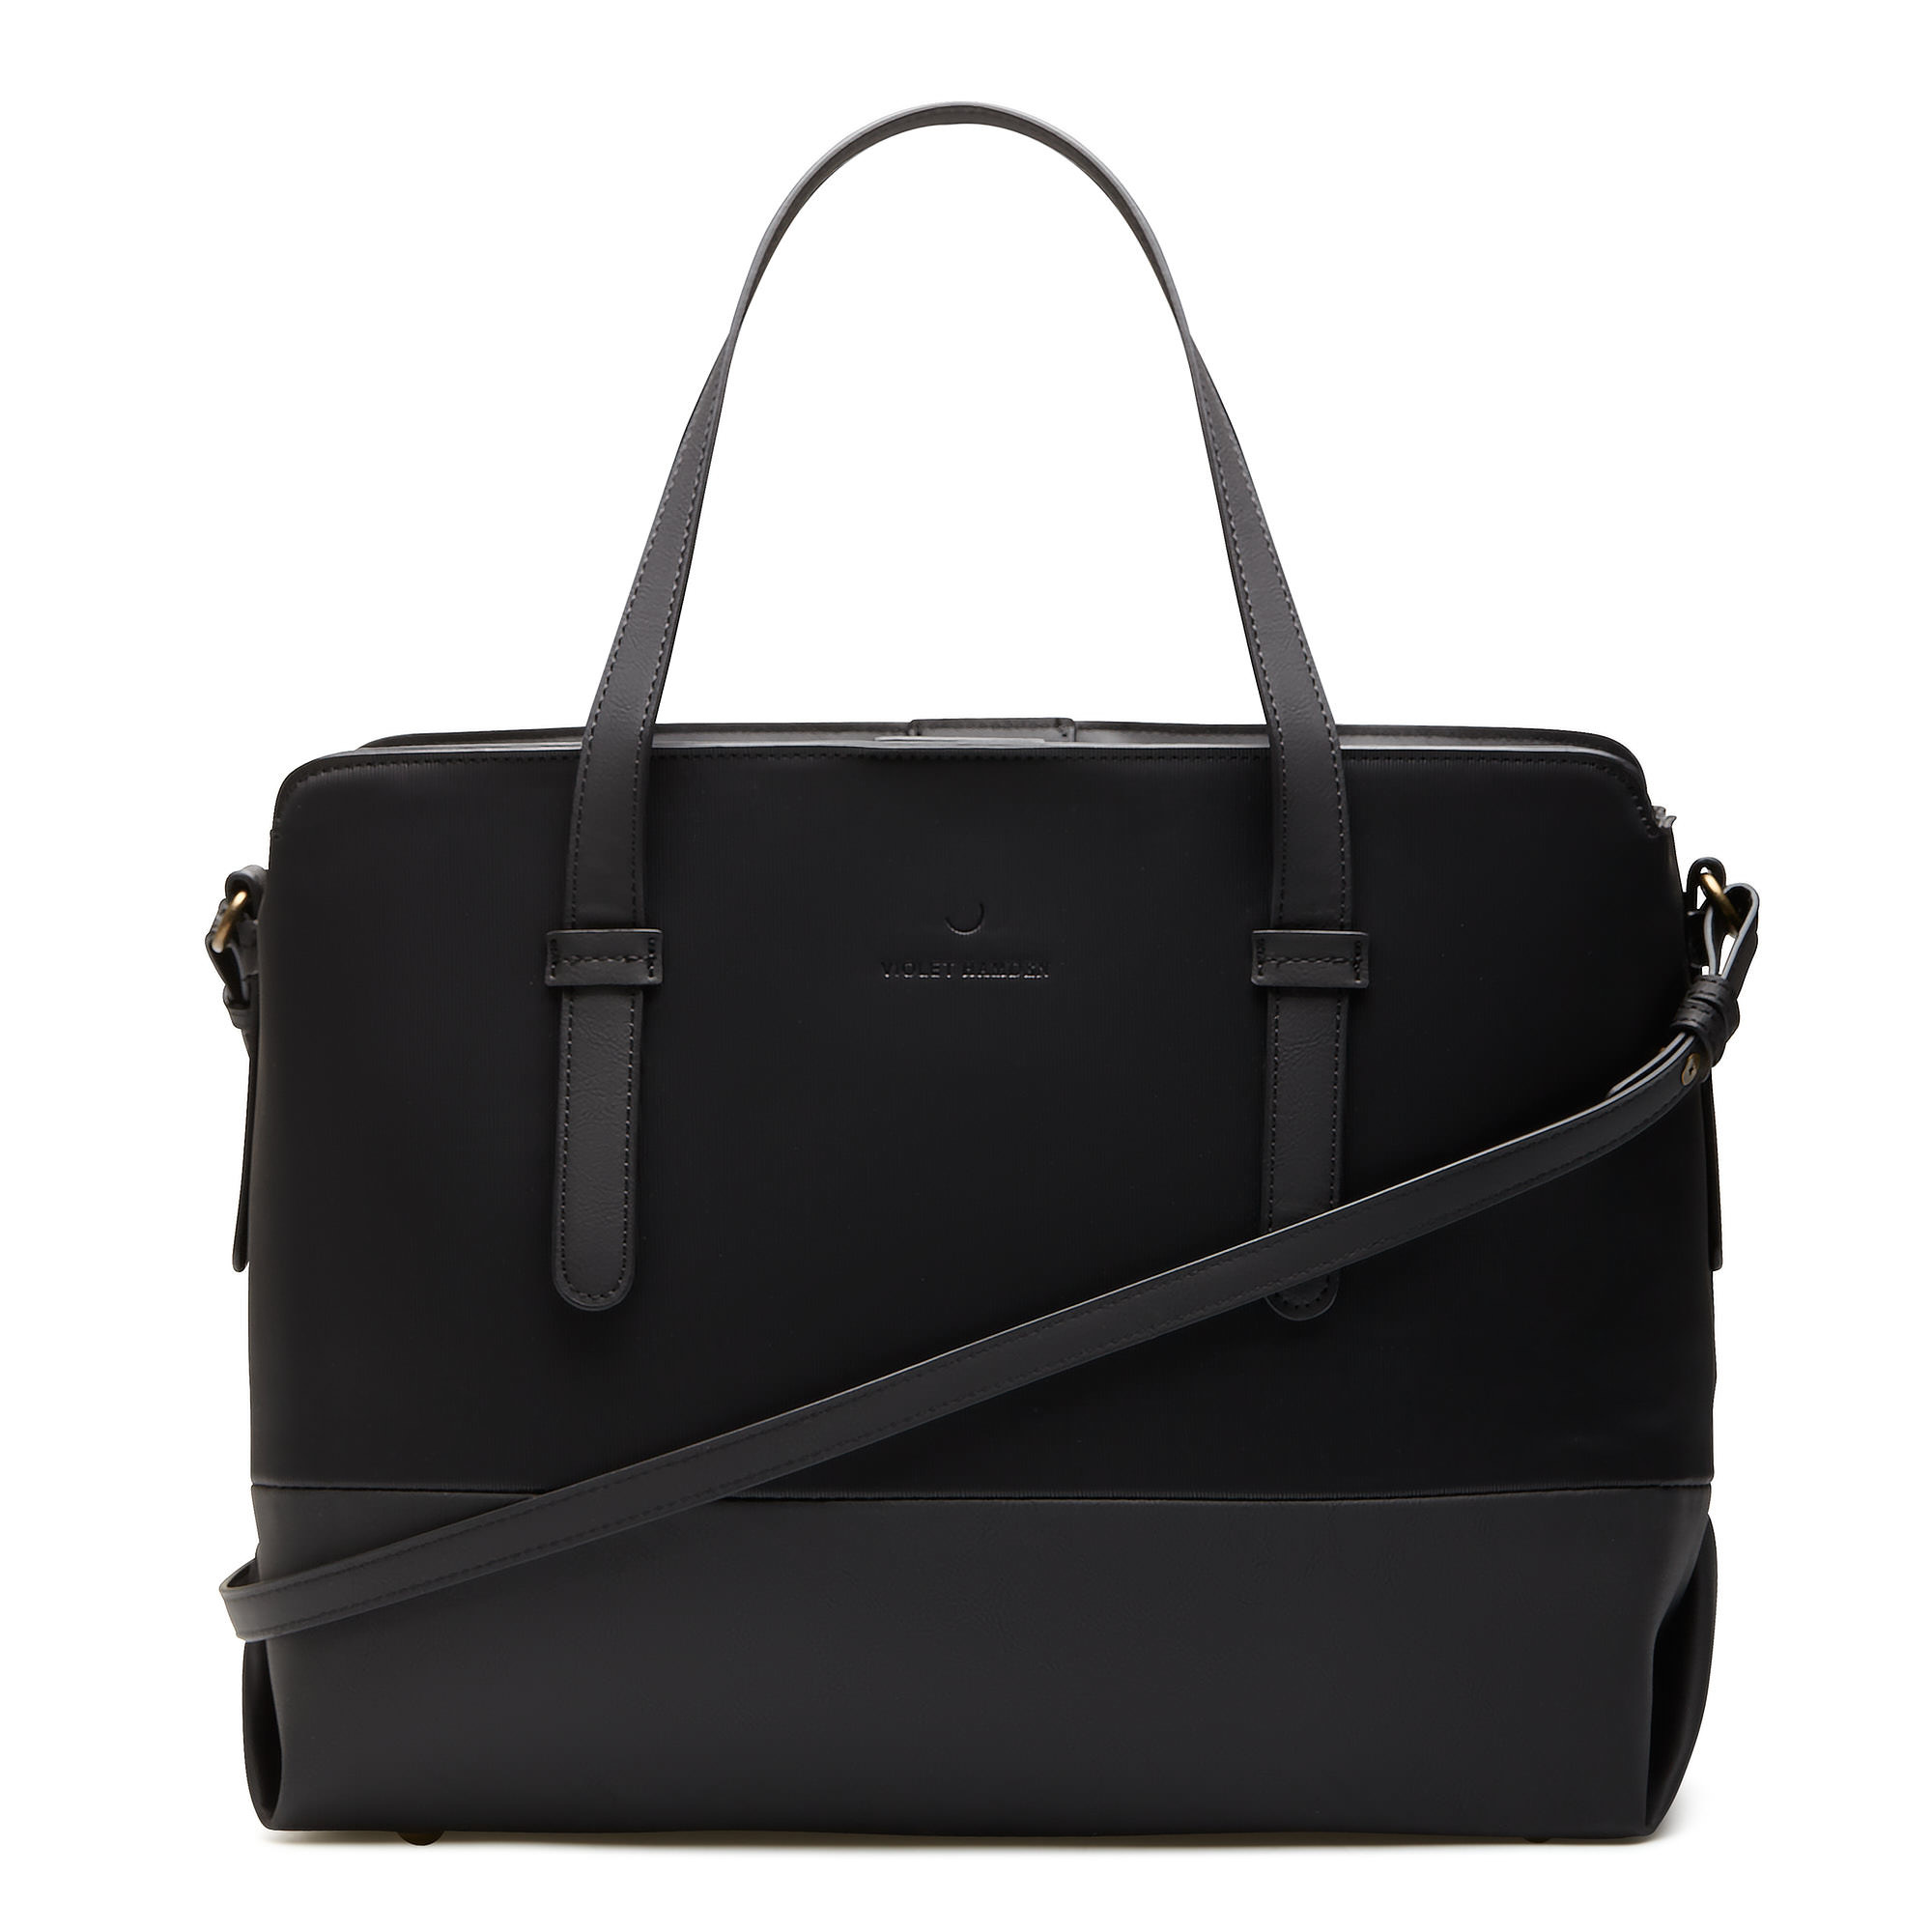 Violet Hamden Essential Bag black shopper